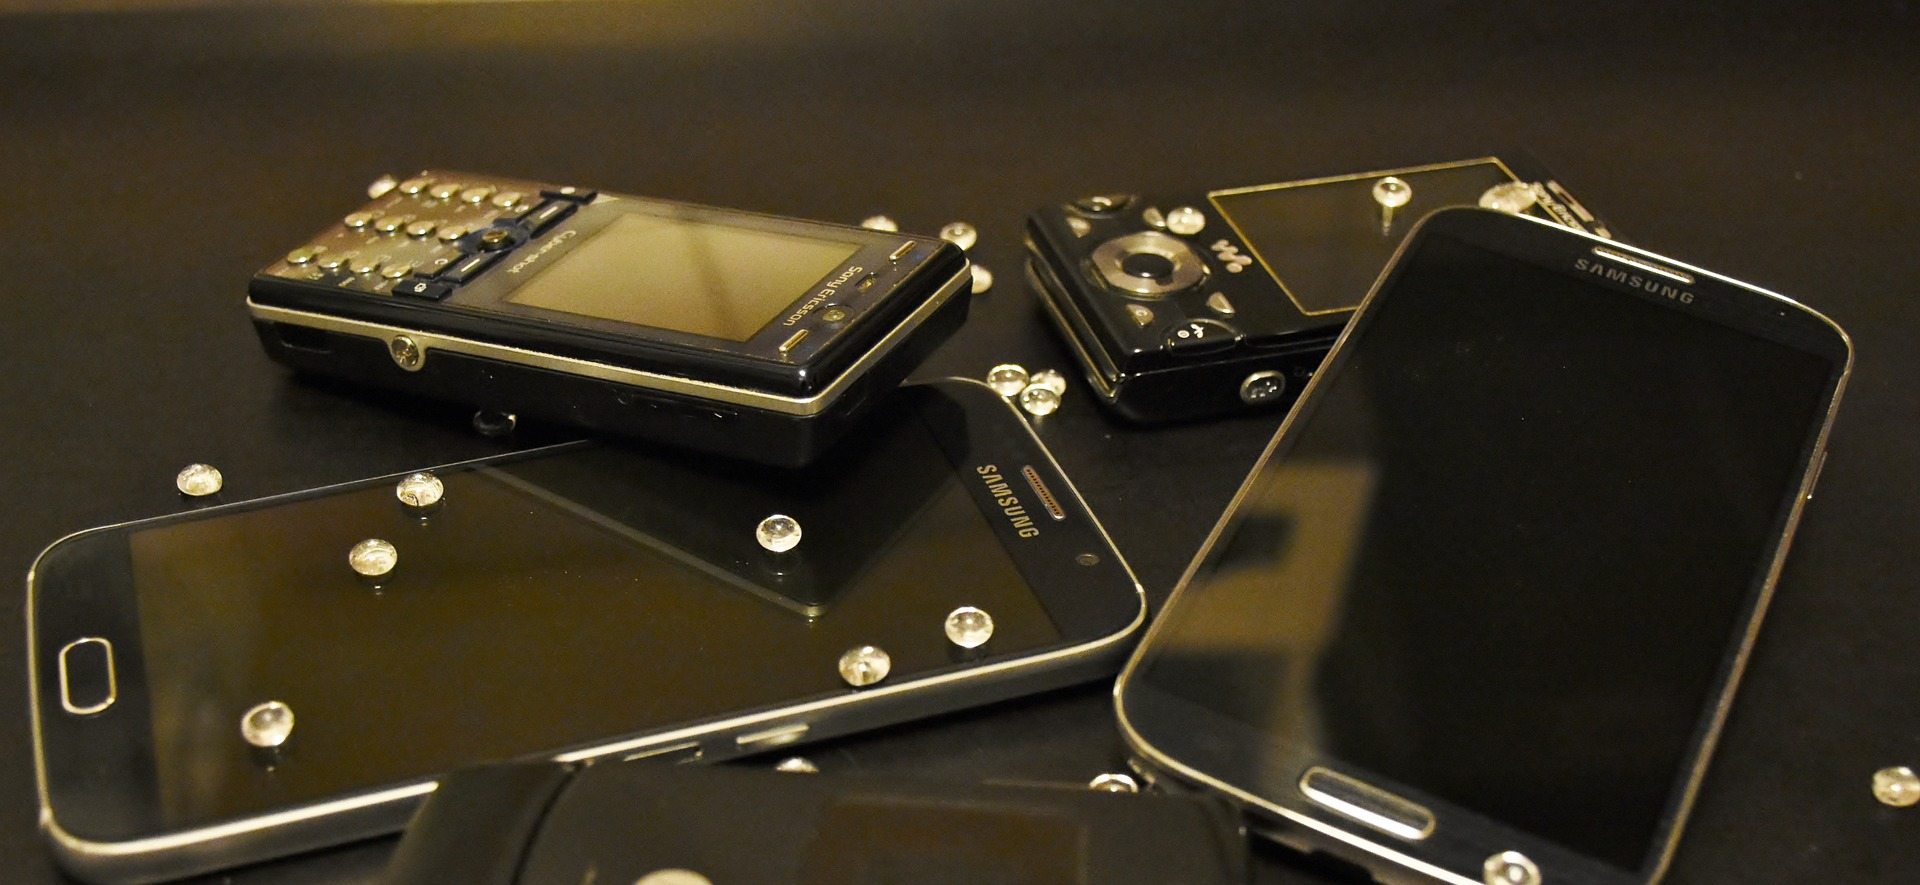 The Future Of Mobile App Development & The Curse Of Fragmentation